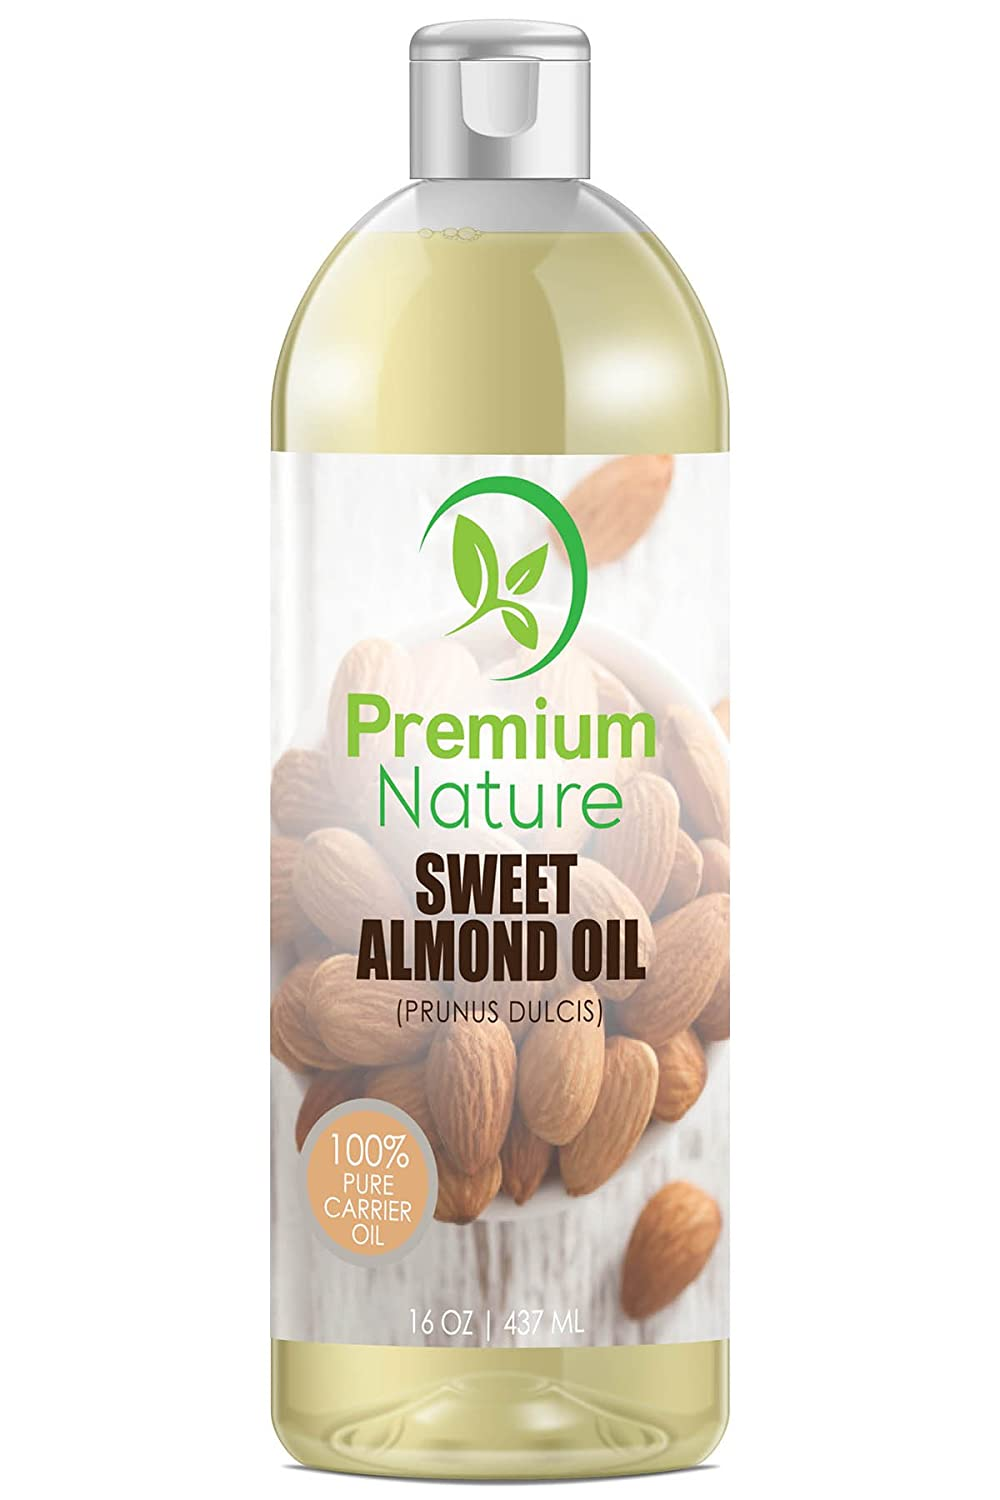 Sweet Almond Oil Carrier Oil - Cold Pressed Pure Natural Body Massage Oils for Essential Oils Mixing, Baby Oil Dry Skin Face Moisturizer Eye Makeup Remover Healthy Nails Cleansing Properties 16 oz Premium Nature